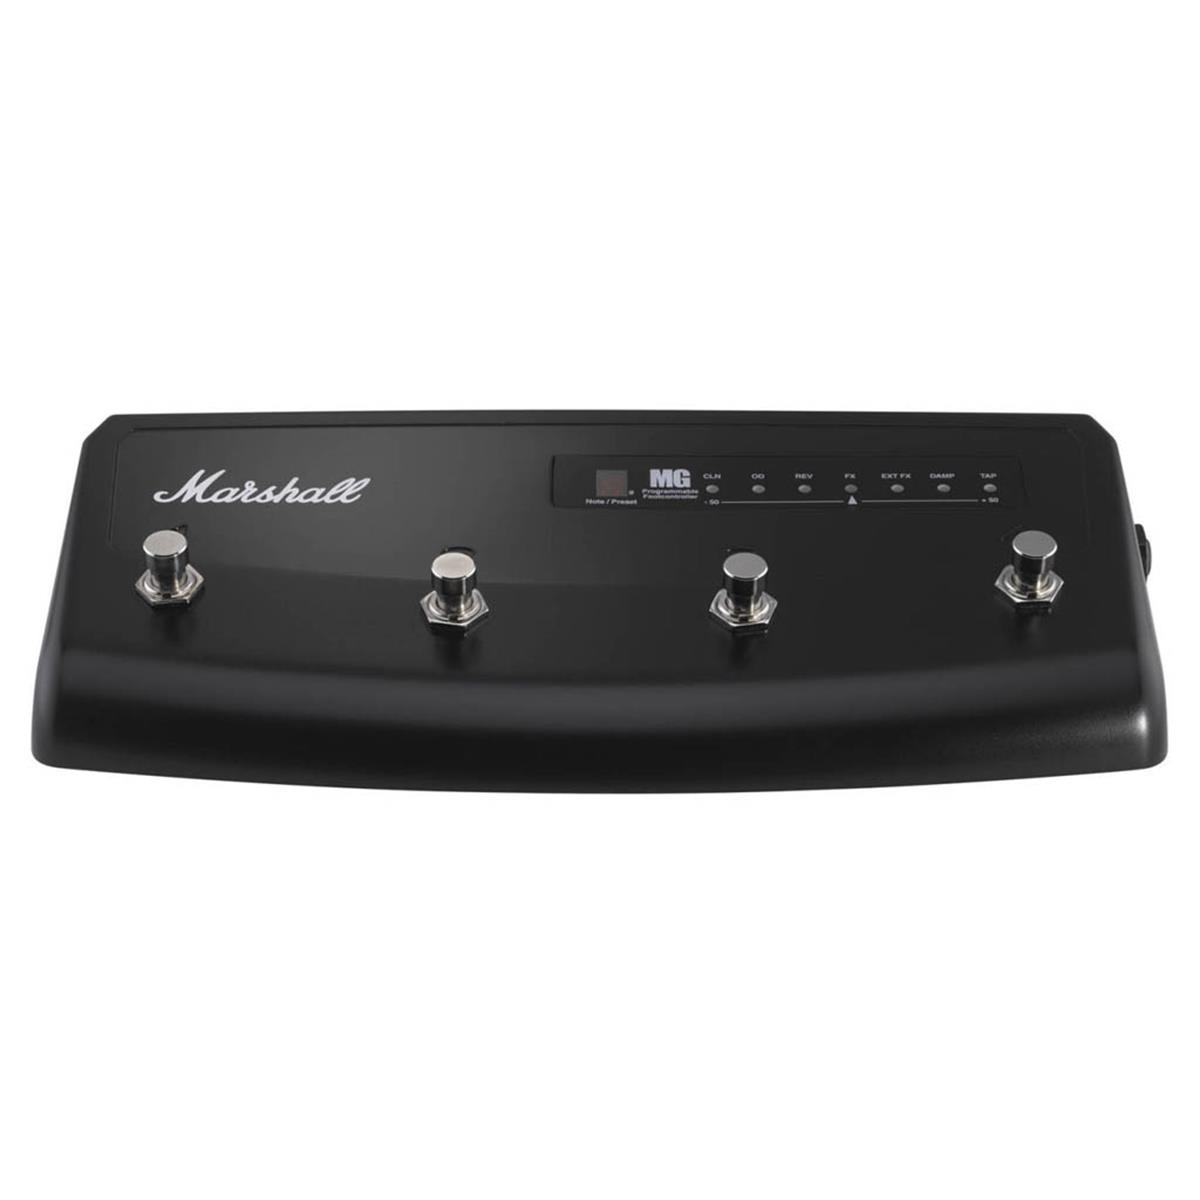 MARSHALL-PEDL90008-FOOTSWITCH-SERIE-MG-sku-16542